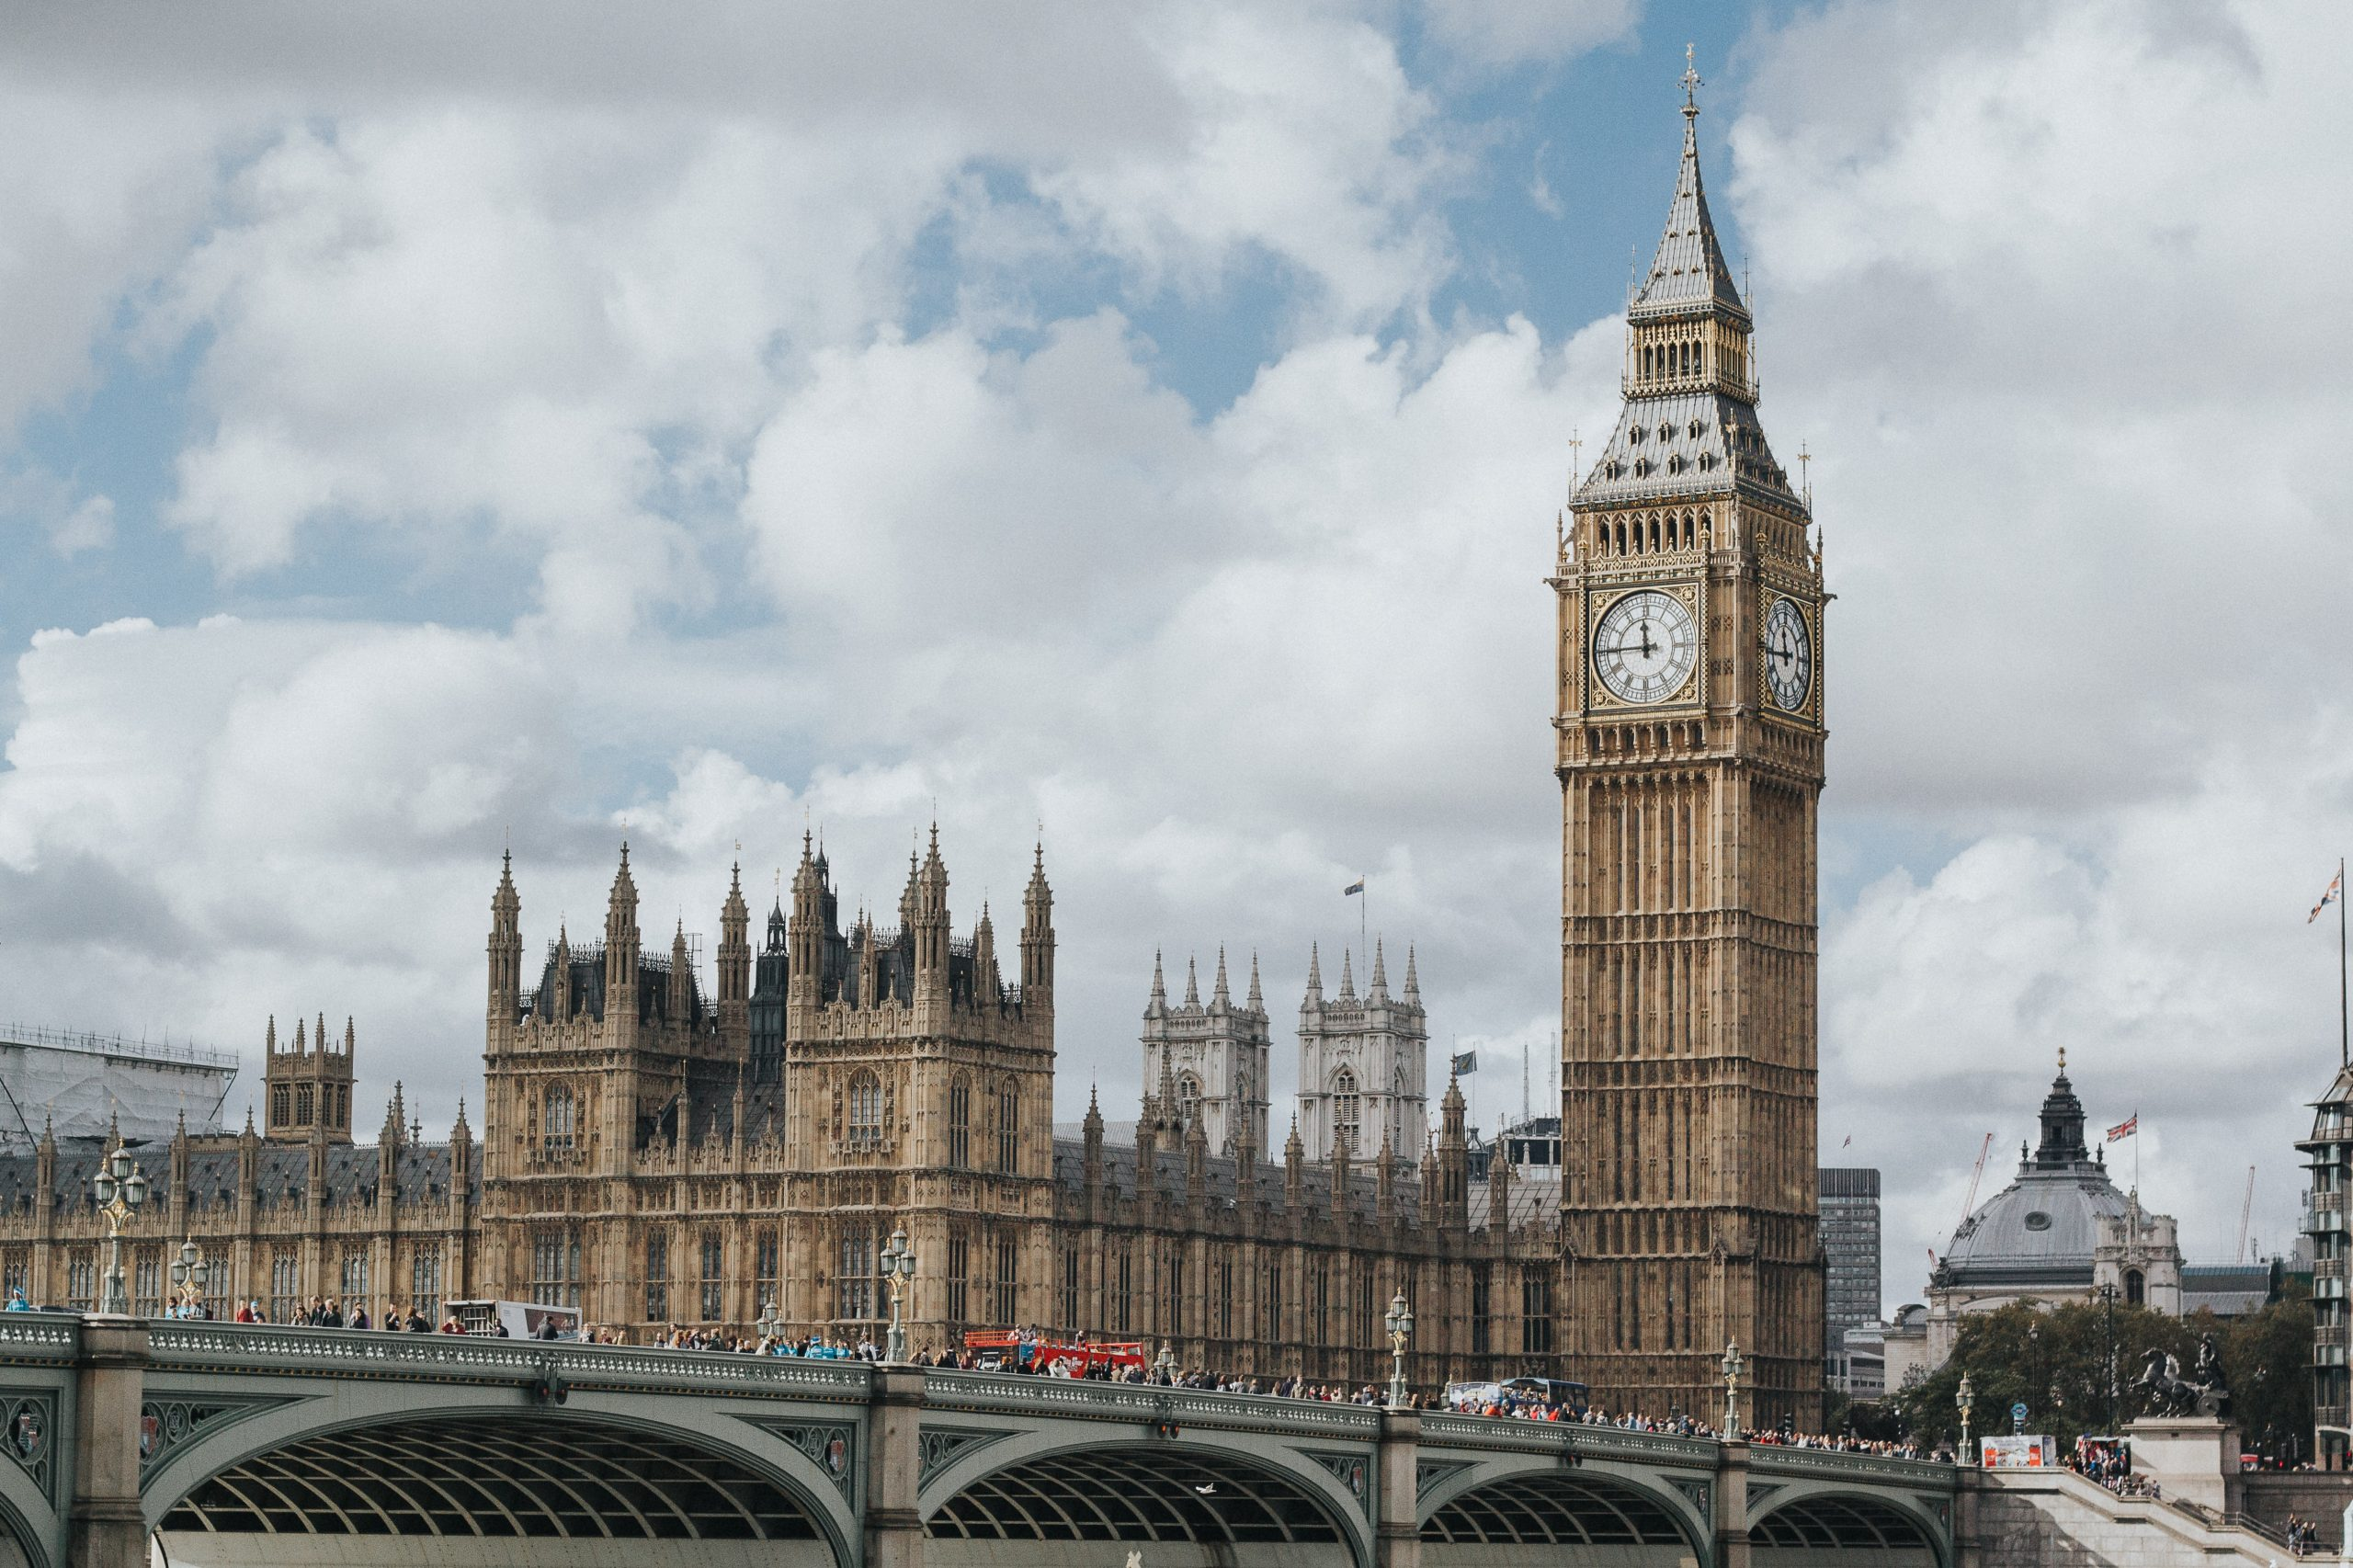 A landscape shot on a cloudy day shows Big Ben and the House of Commons